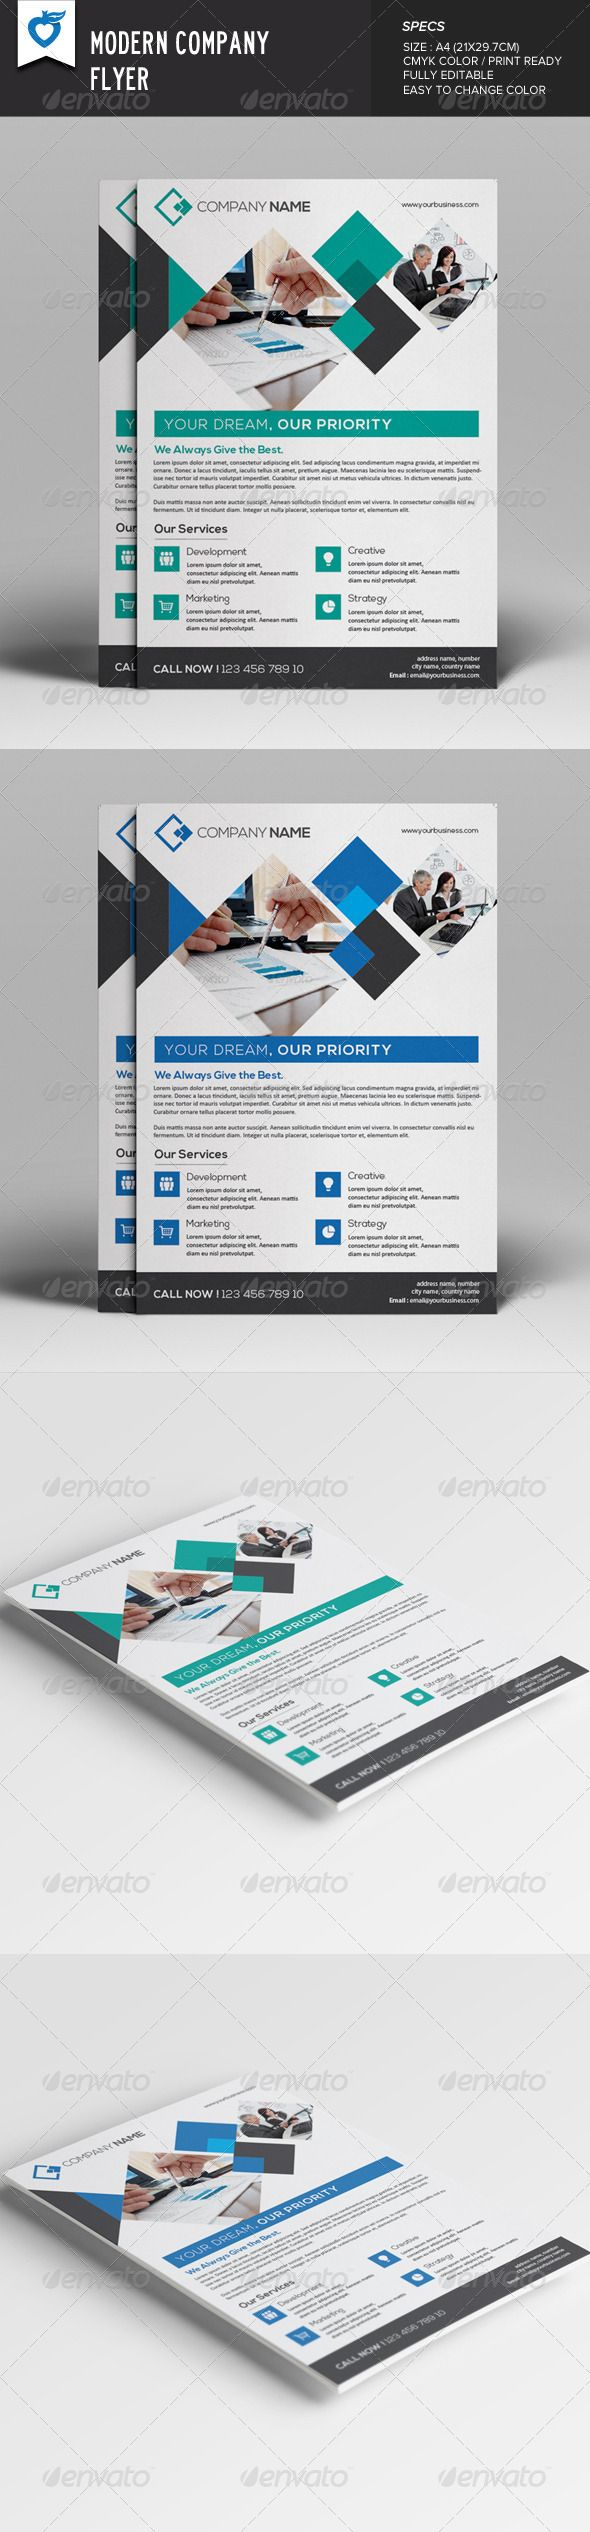 Modern Company Flyer Template PSD | Buy and Download: http://graphicriver.net/item/modern-company-flyer/8026340?WT.ac=category_thumb&WT.z_author=LeafLove&ref=ksioks